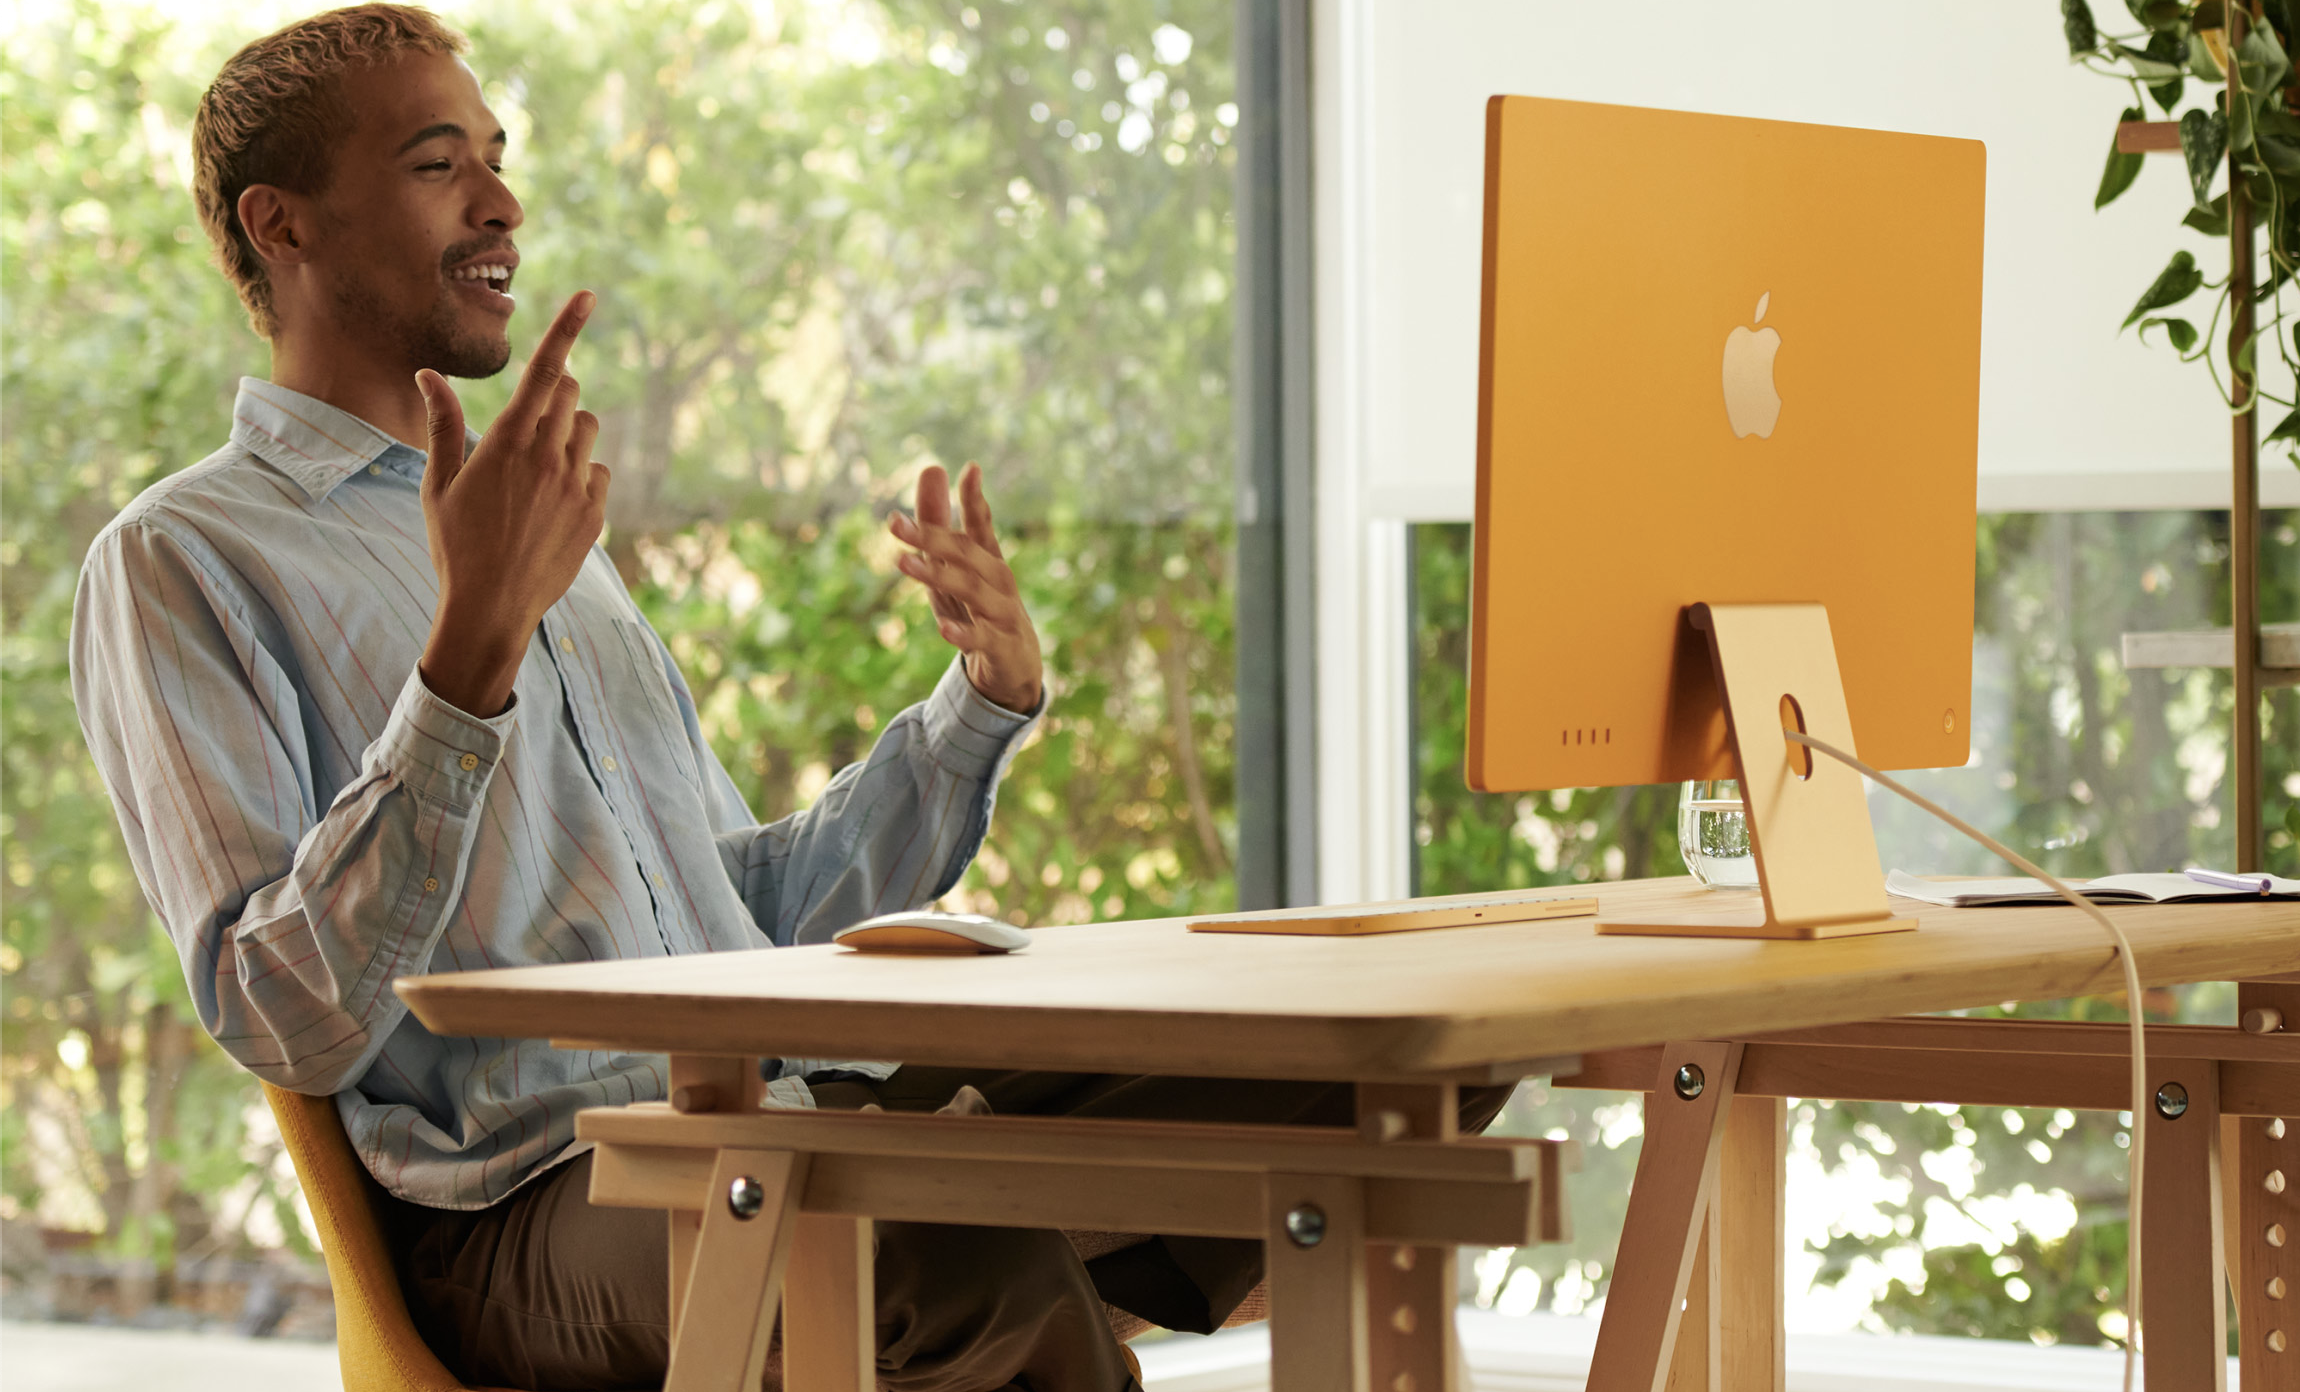 An excited person making hand gestures at a yellow iMac computer